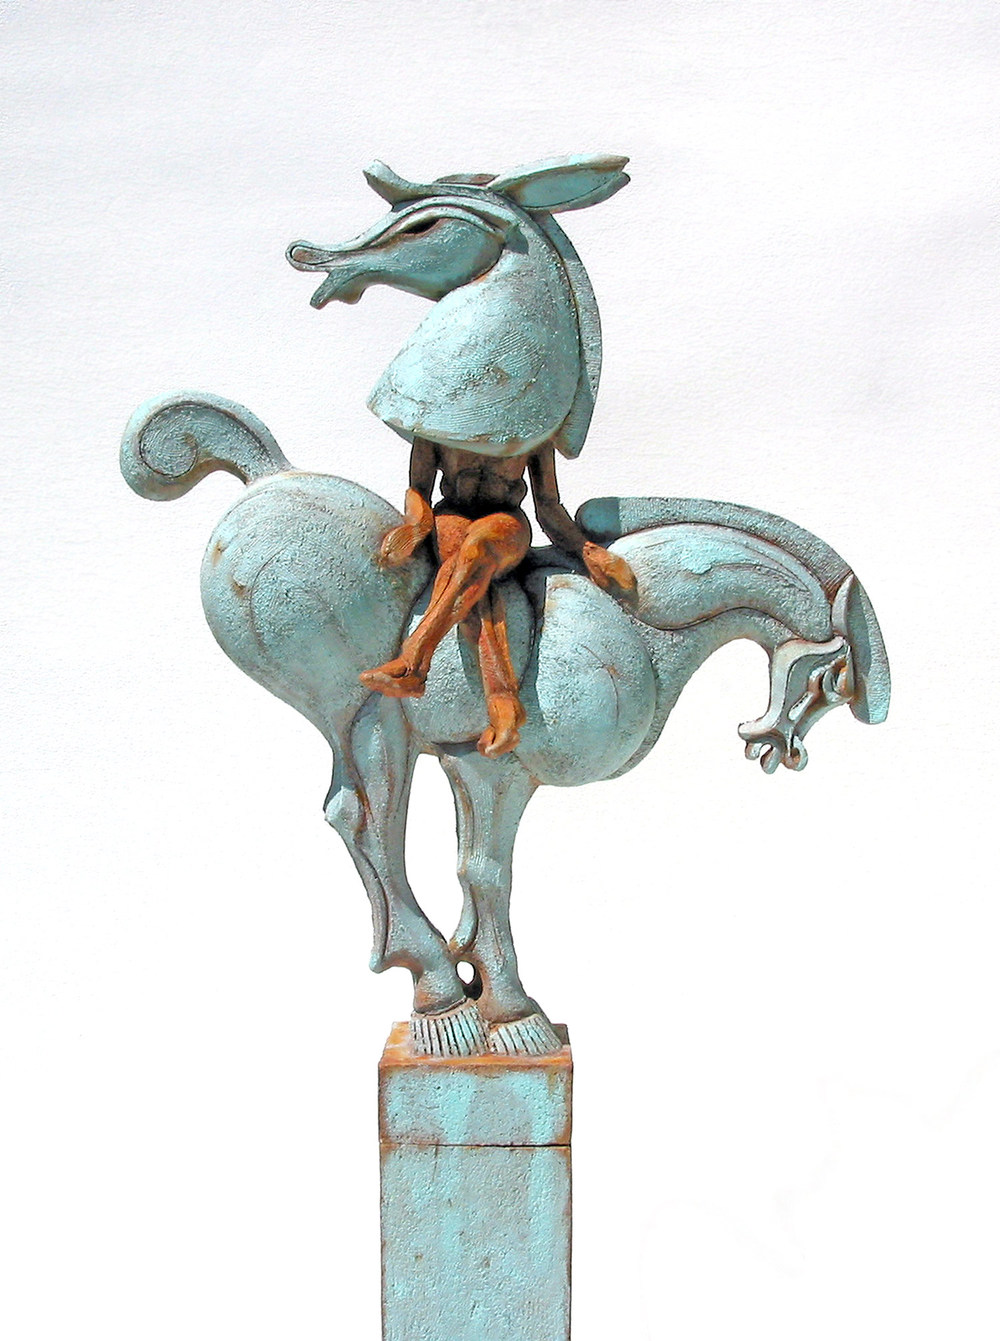 """The notion of putting a Bottom in repose, on a pedestal appealed to my sense of the absurd – making the misplaced à propos and credible.""  This work alludes to Oberon's speech to Puck in Shakespeare's Midsummer Night's Dream where Bottom's fate is sealed.  Chronologically, of course, the small- headed Tang Horse doesn't belong in this story, though somehow, it sits well together."